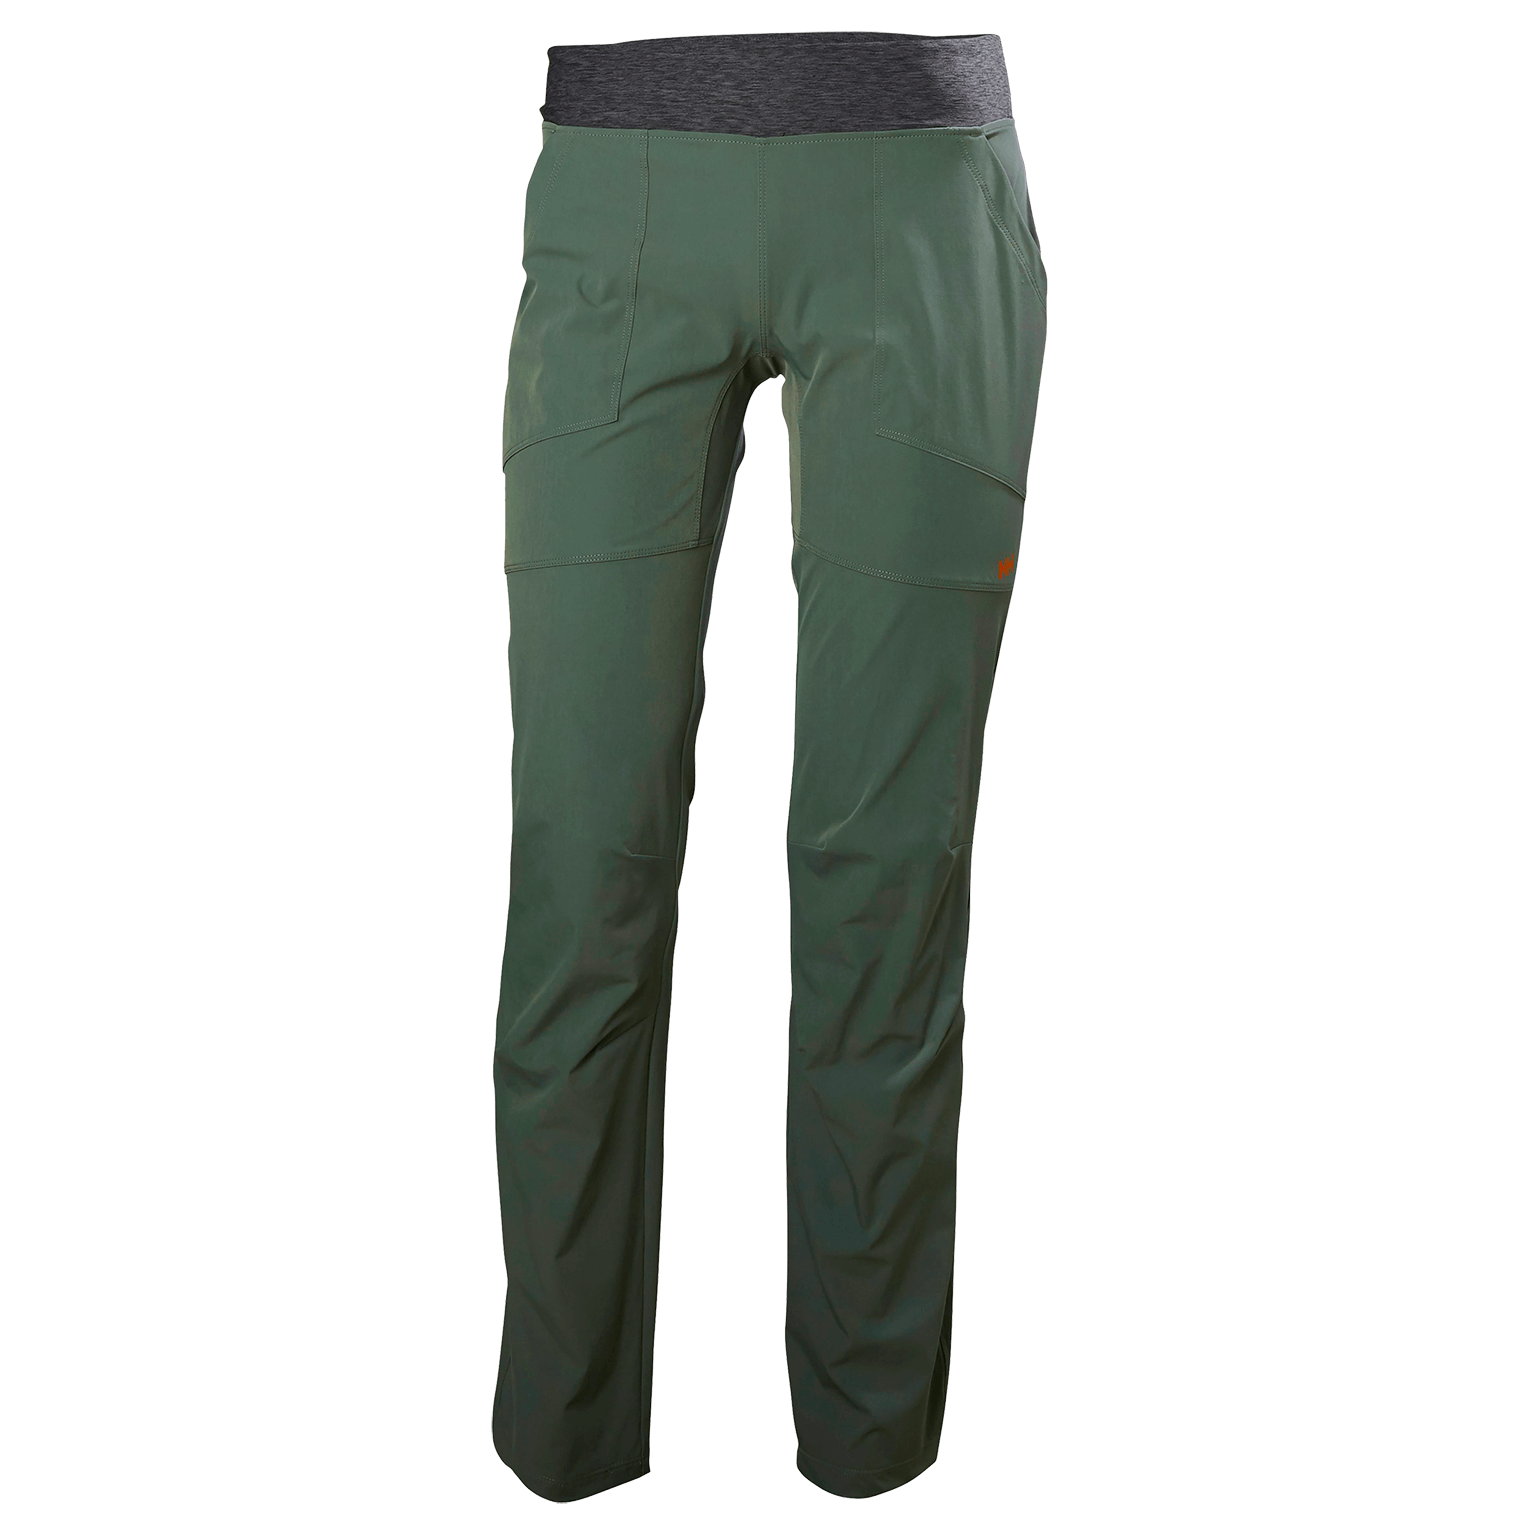 Trousers PNG HD-PlusPNG.com-1528 - Trousers PNG HD